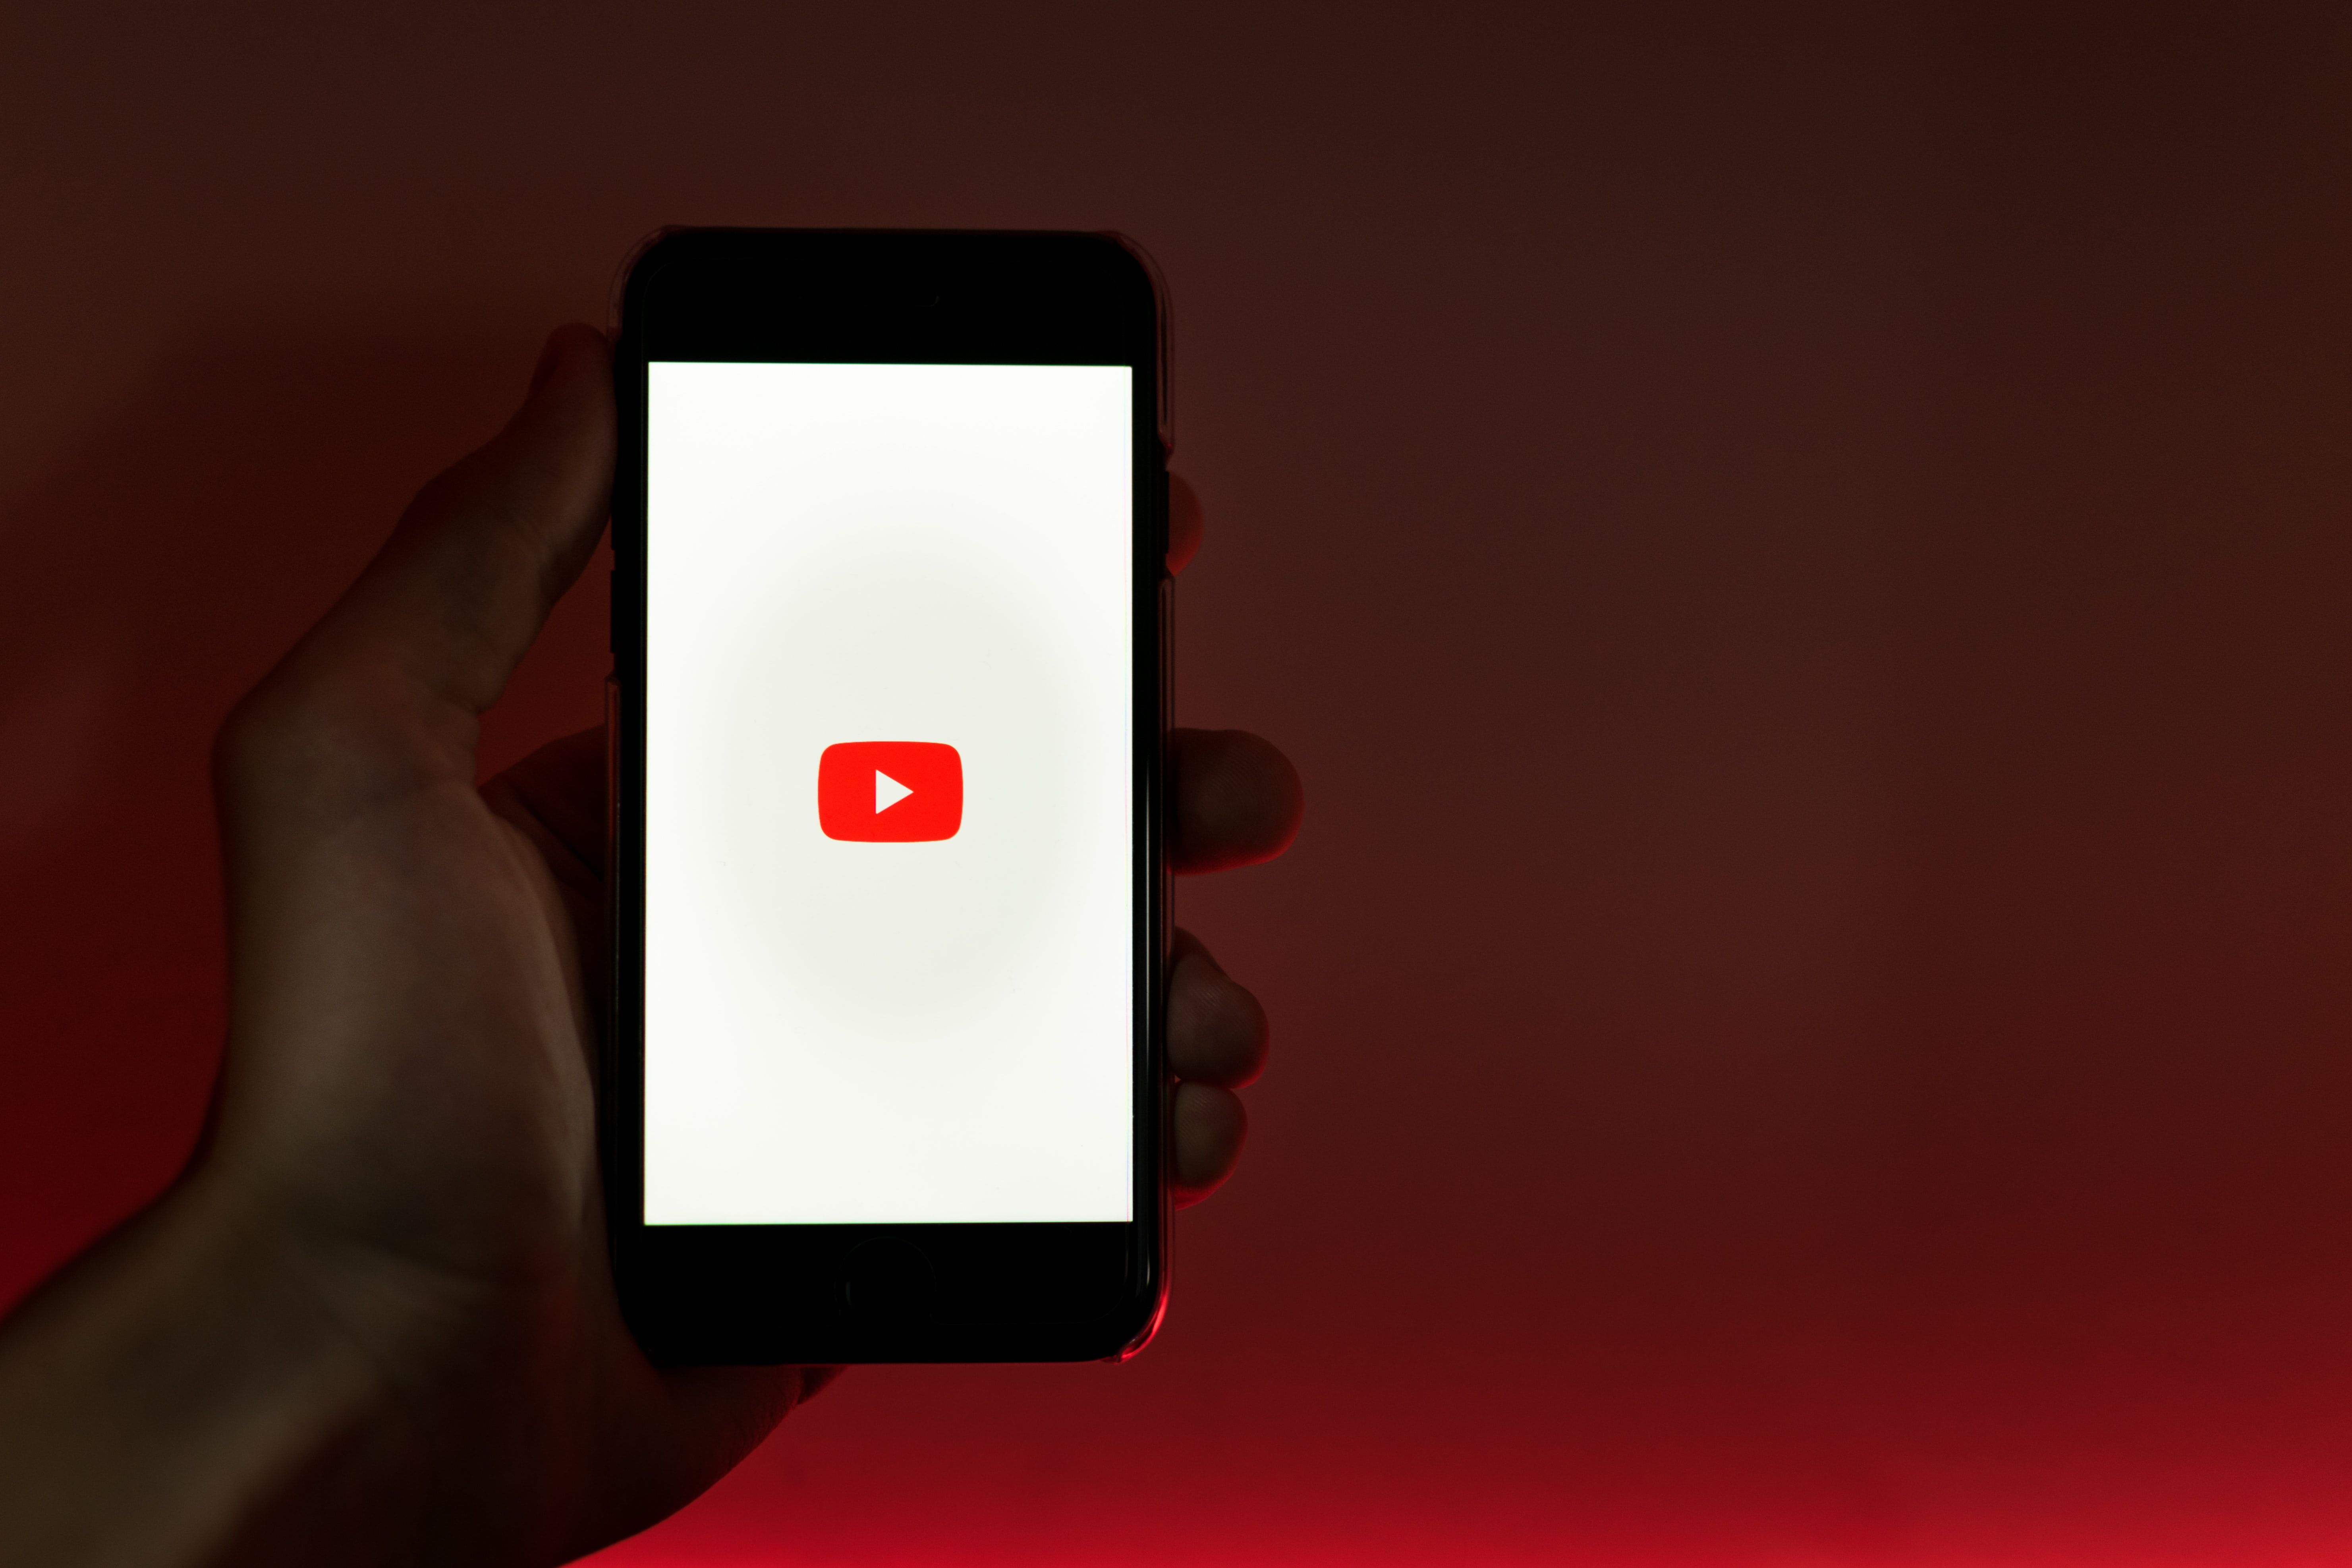 YouTube Icon on Mobile Phone